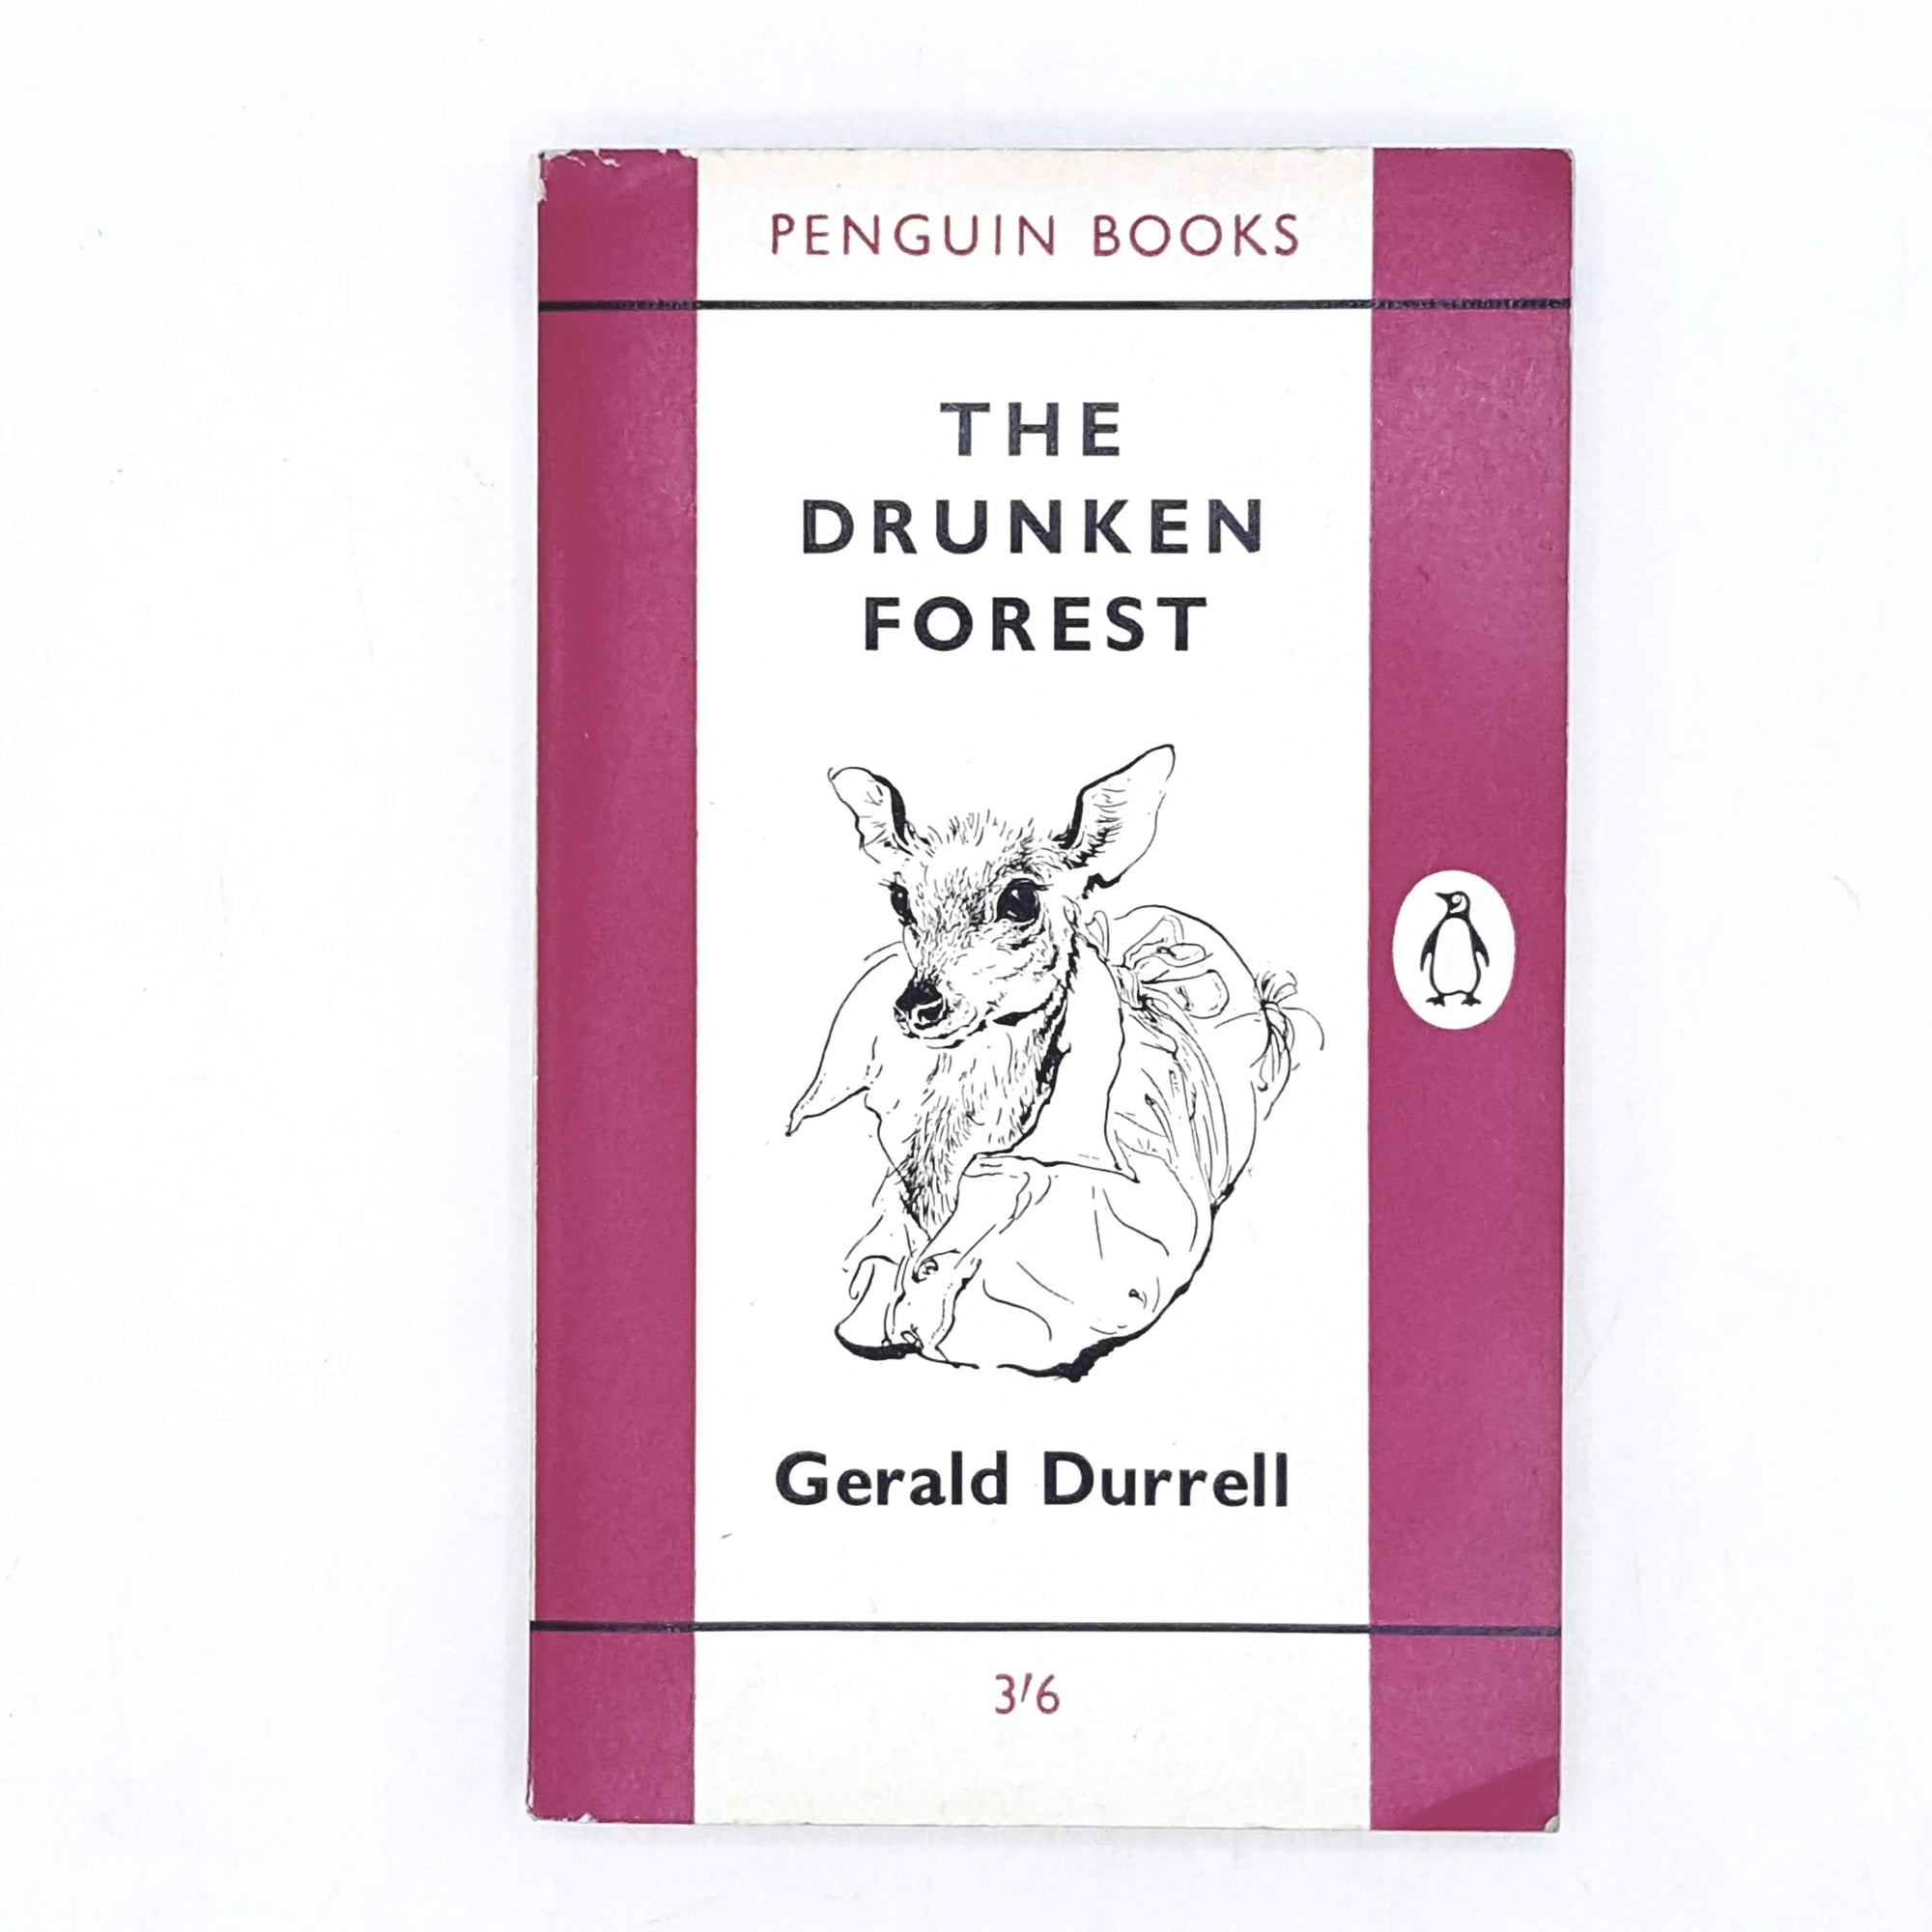 The Drunken Forest by Gerald Durrel 1962